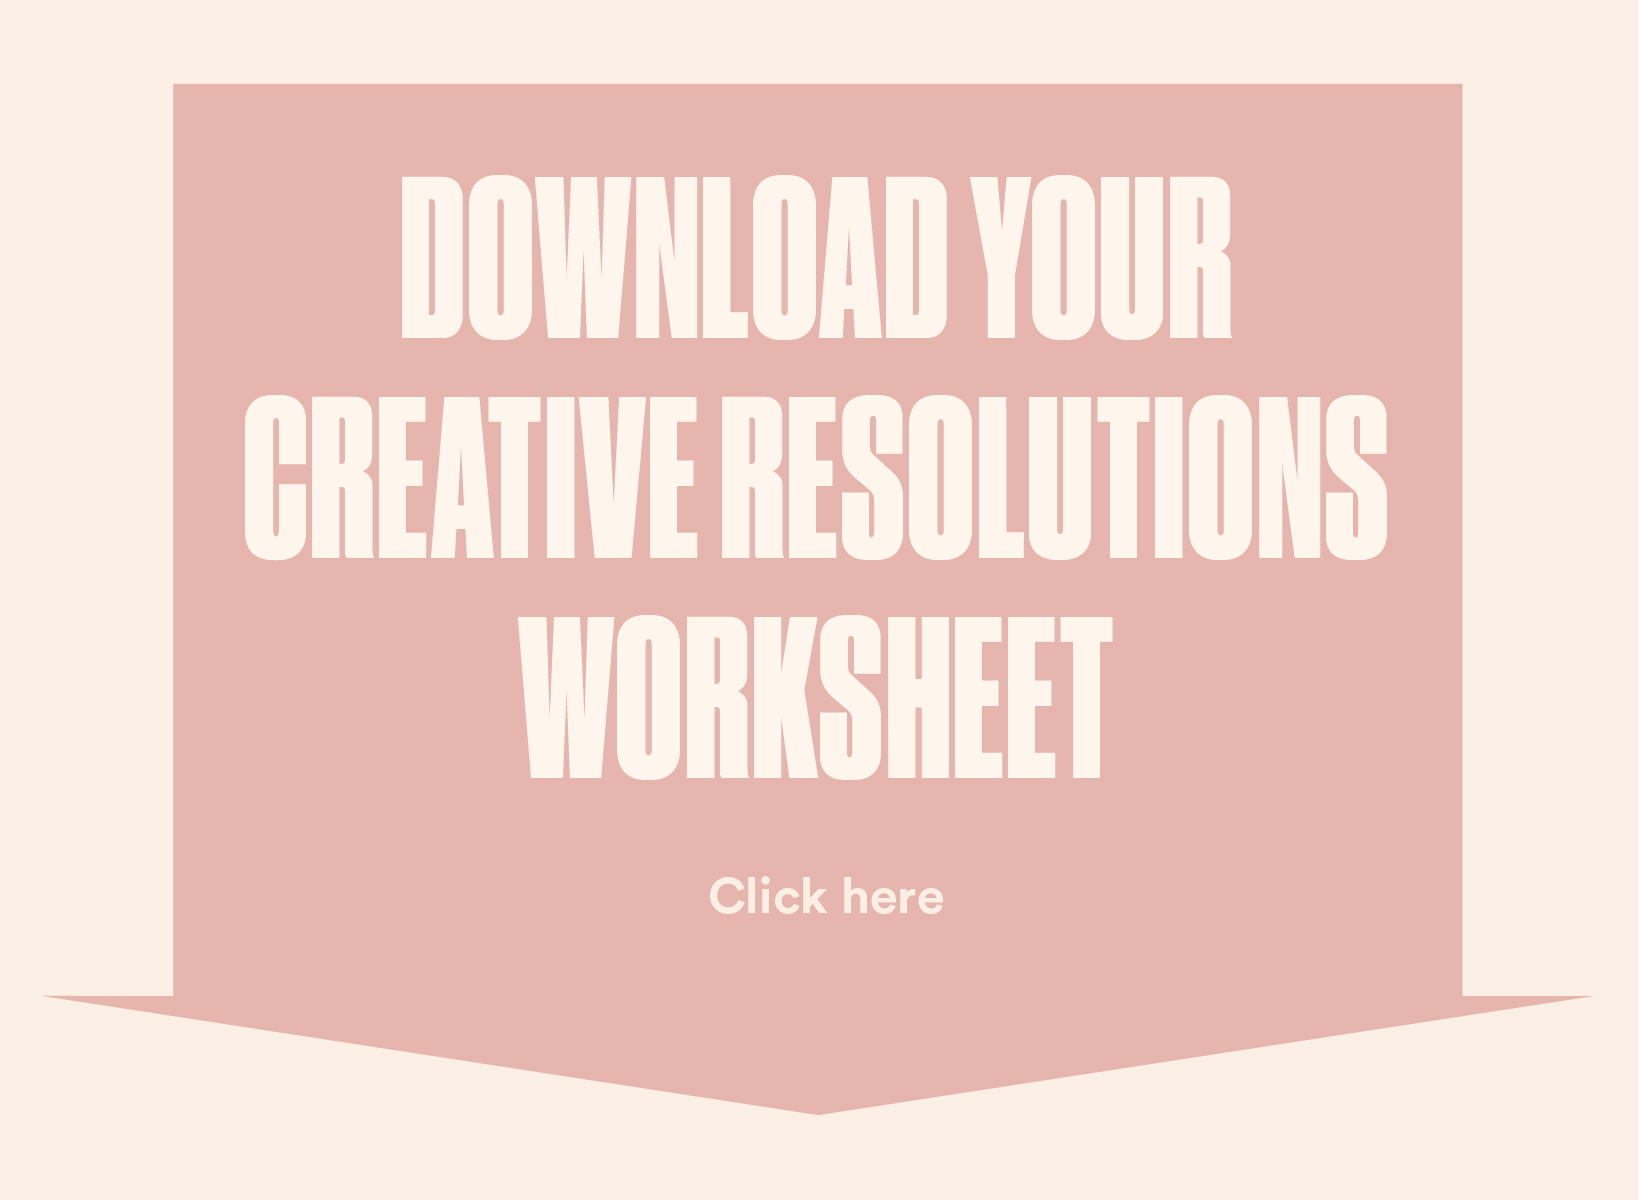 Download your Creative Resolutions Worksheet